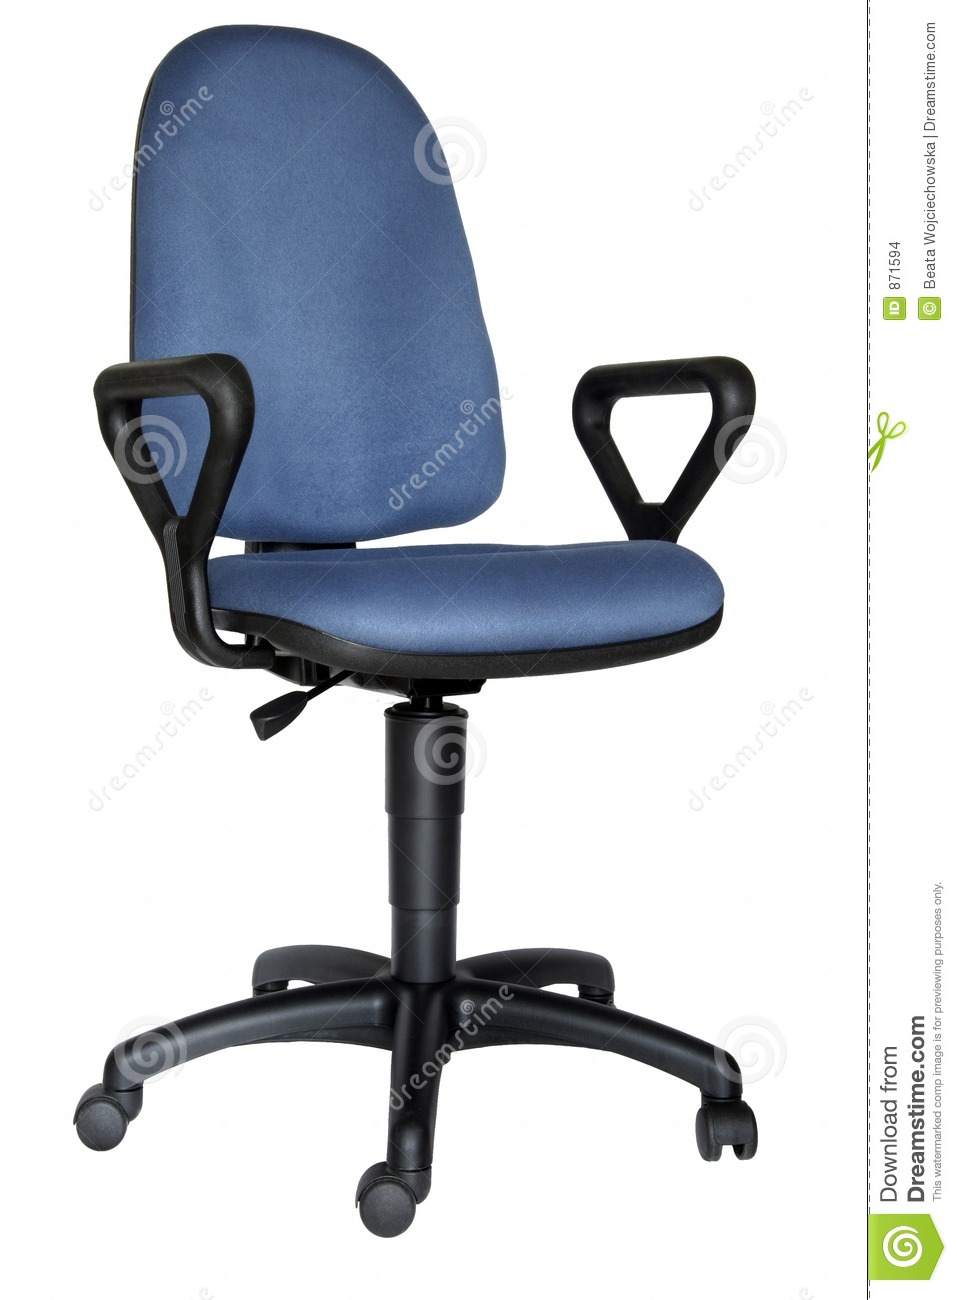 Blue office chair stock images image 871594 for Blue office chair